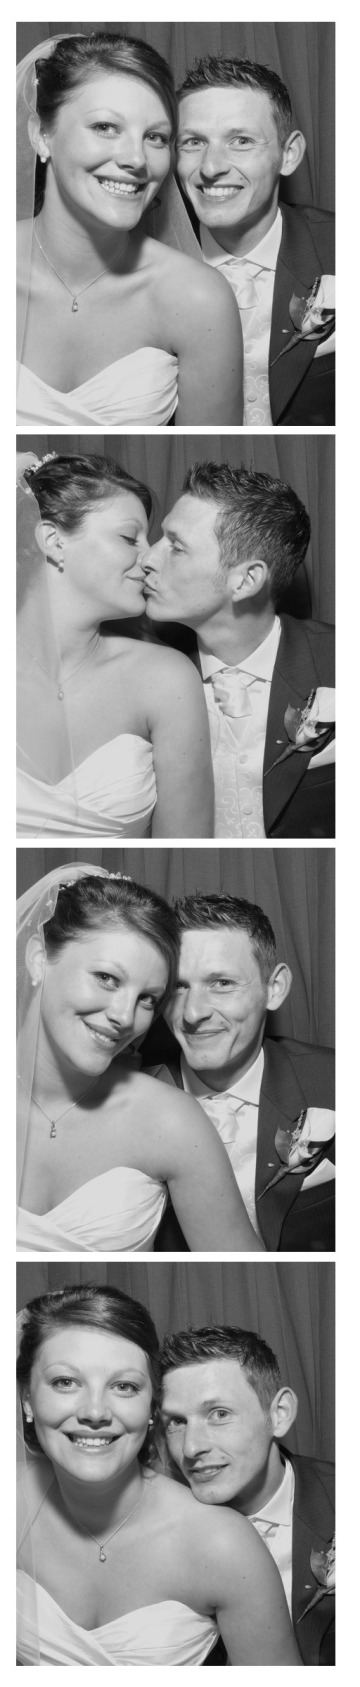 wedding photobooths http://www.snaparazziphotobooths.co.uk